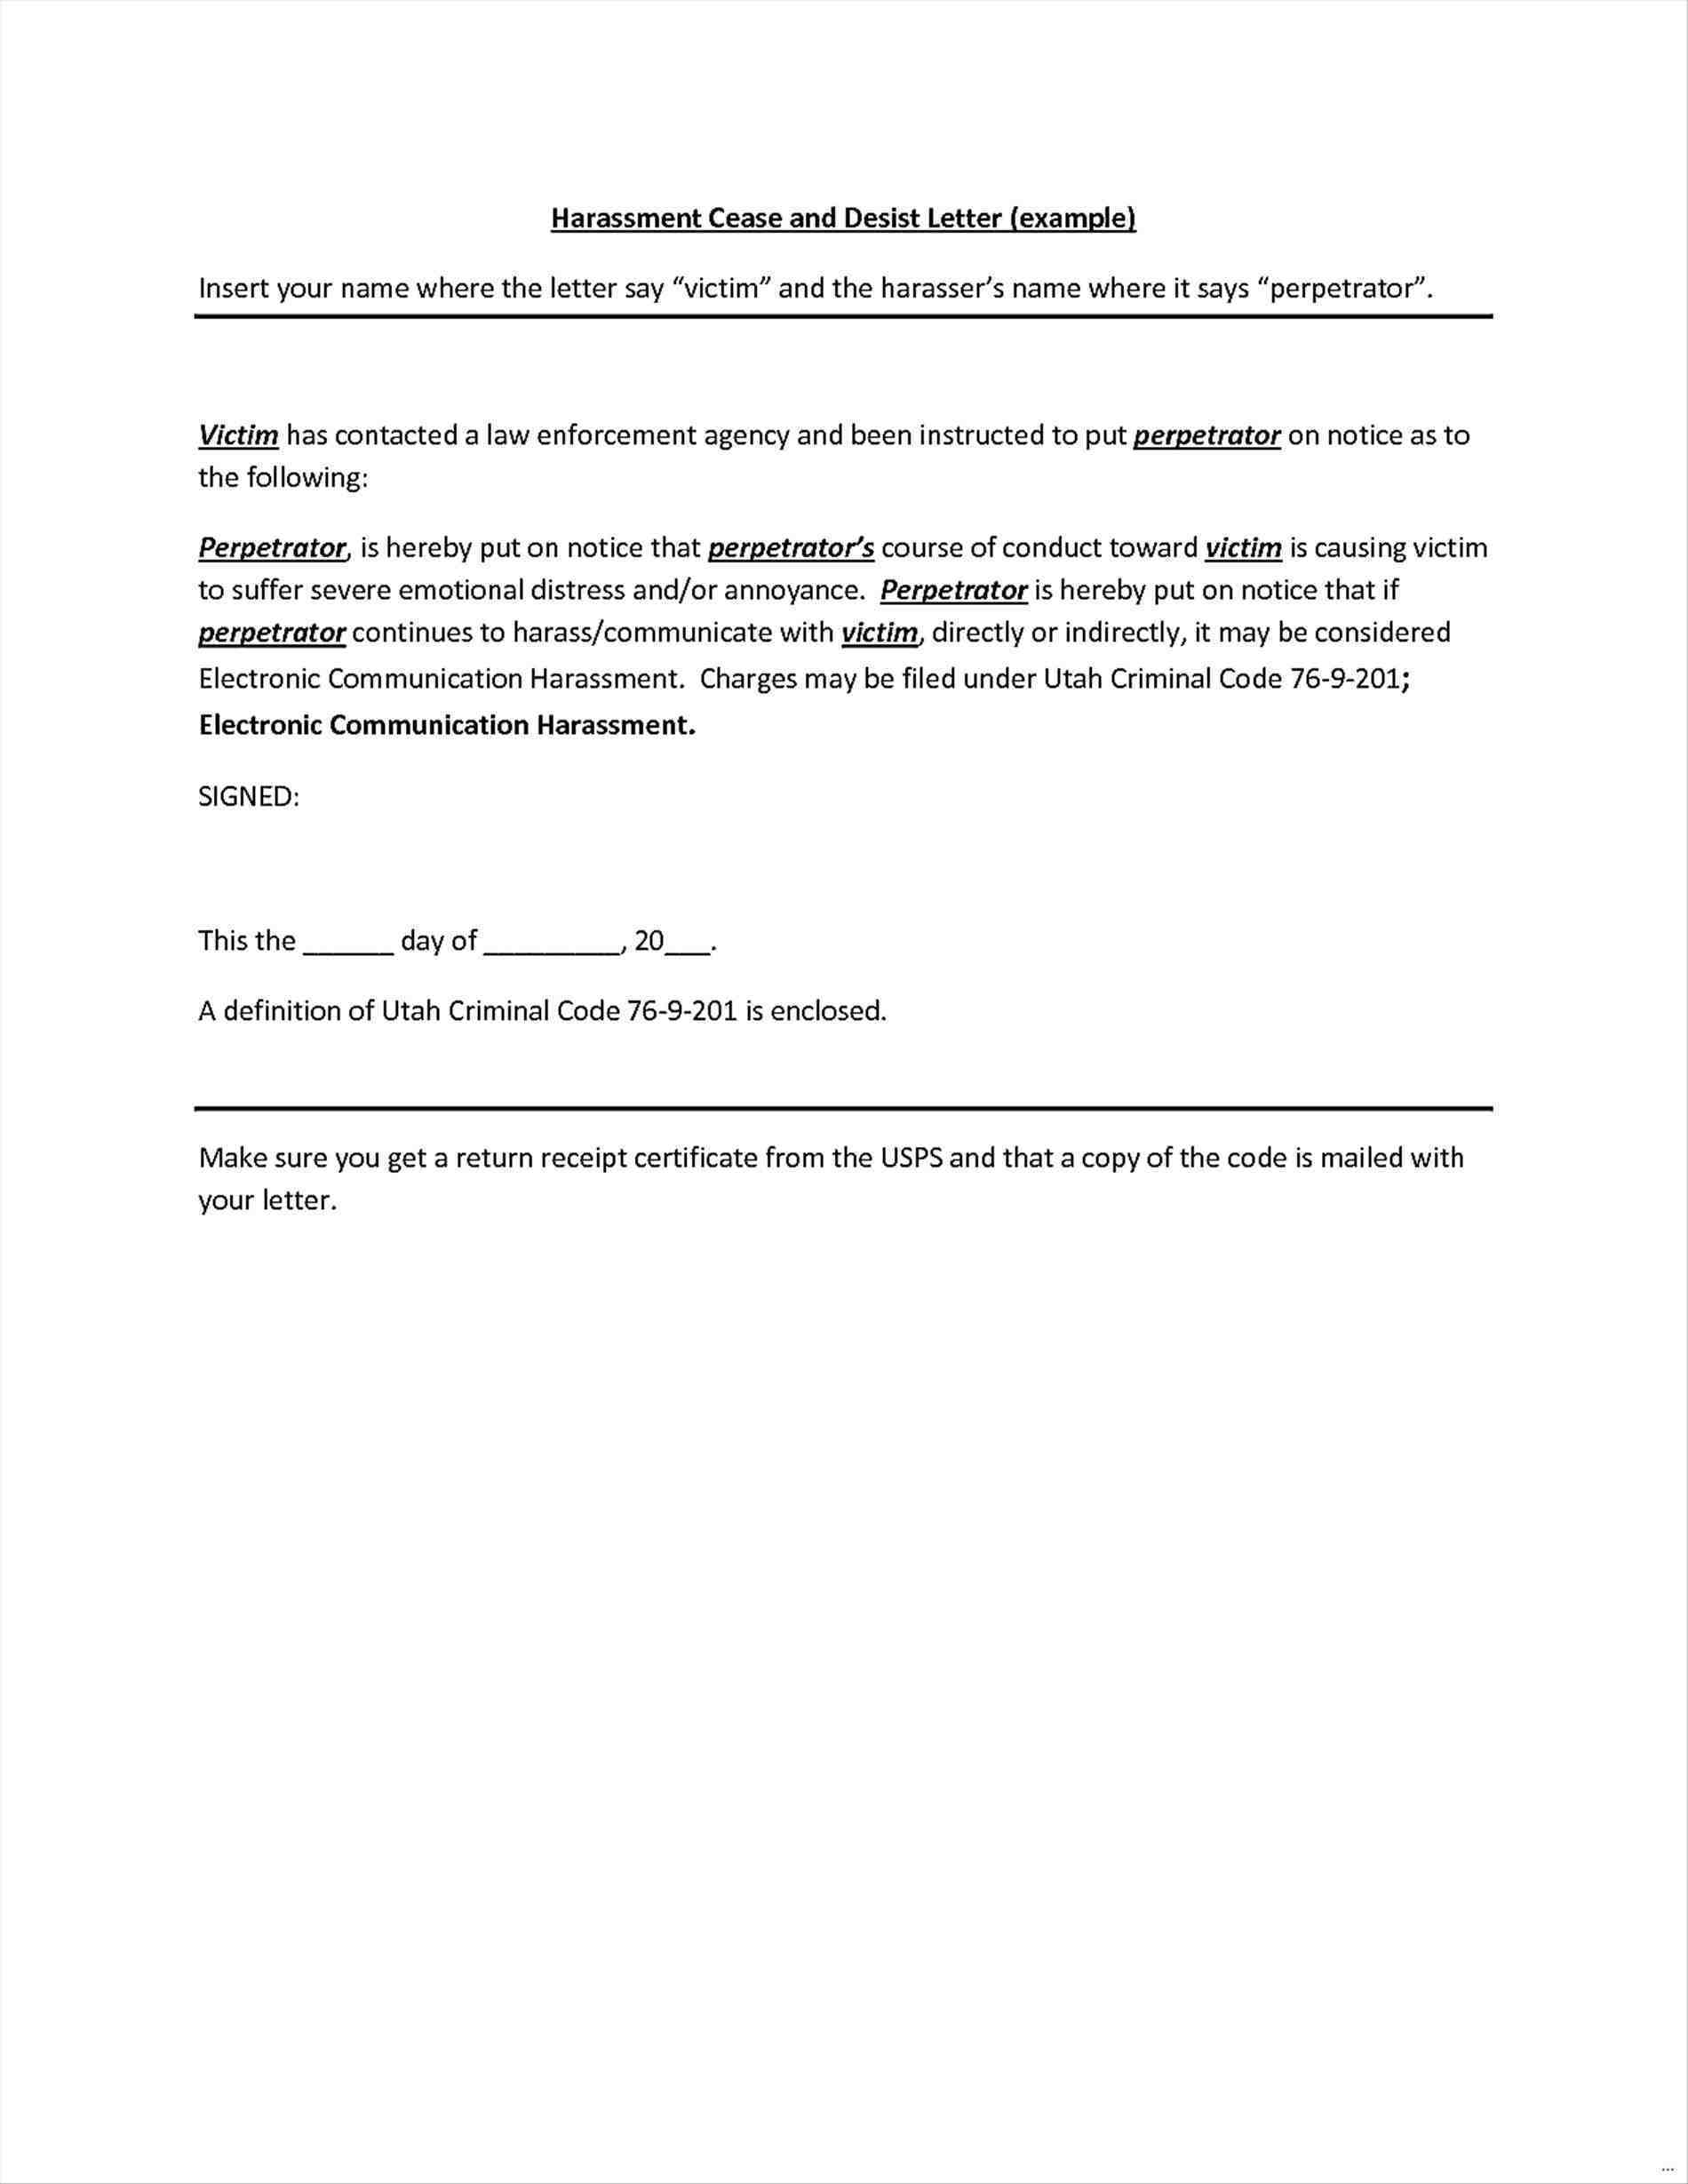 Free Cease and Desist Letter Template - What is A Cease and Desist Letter Awesome Cease and Desist Template